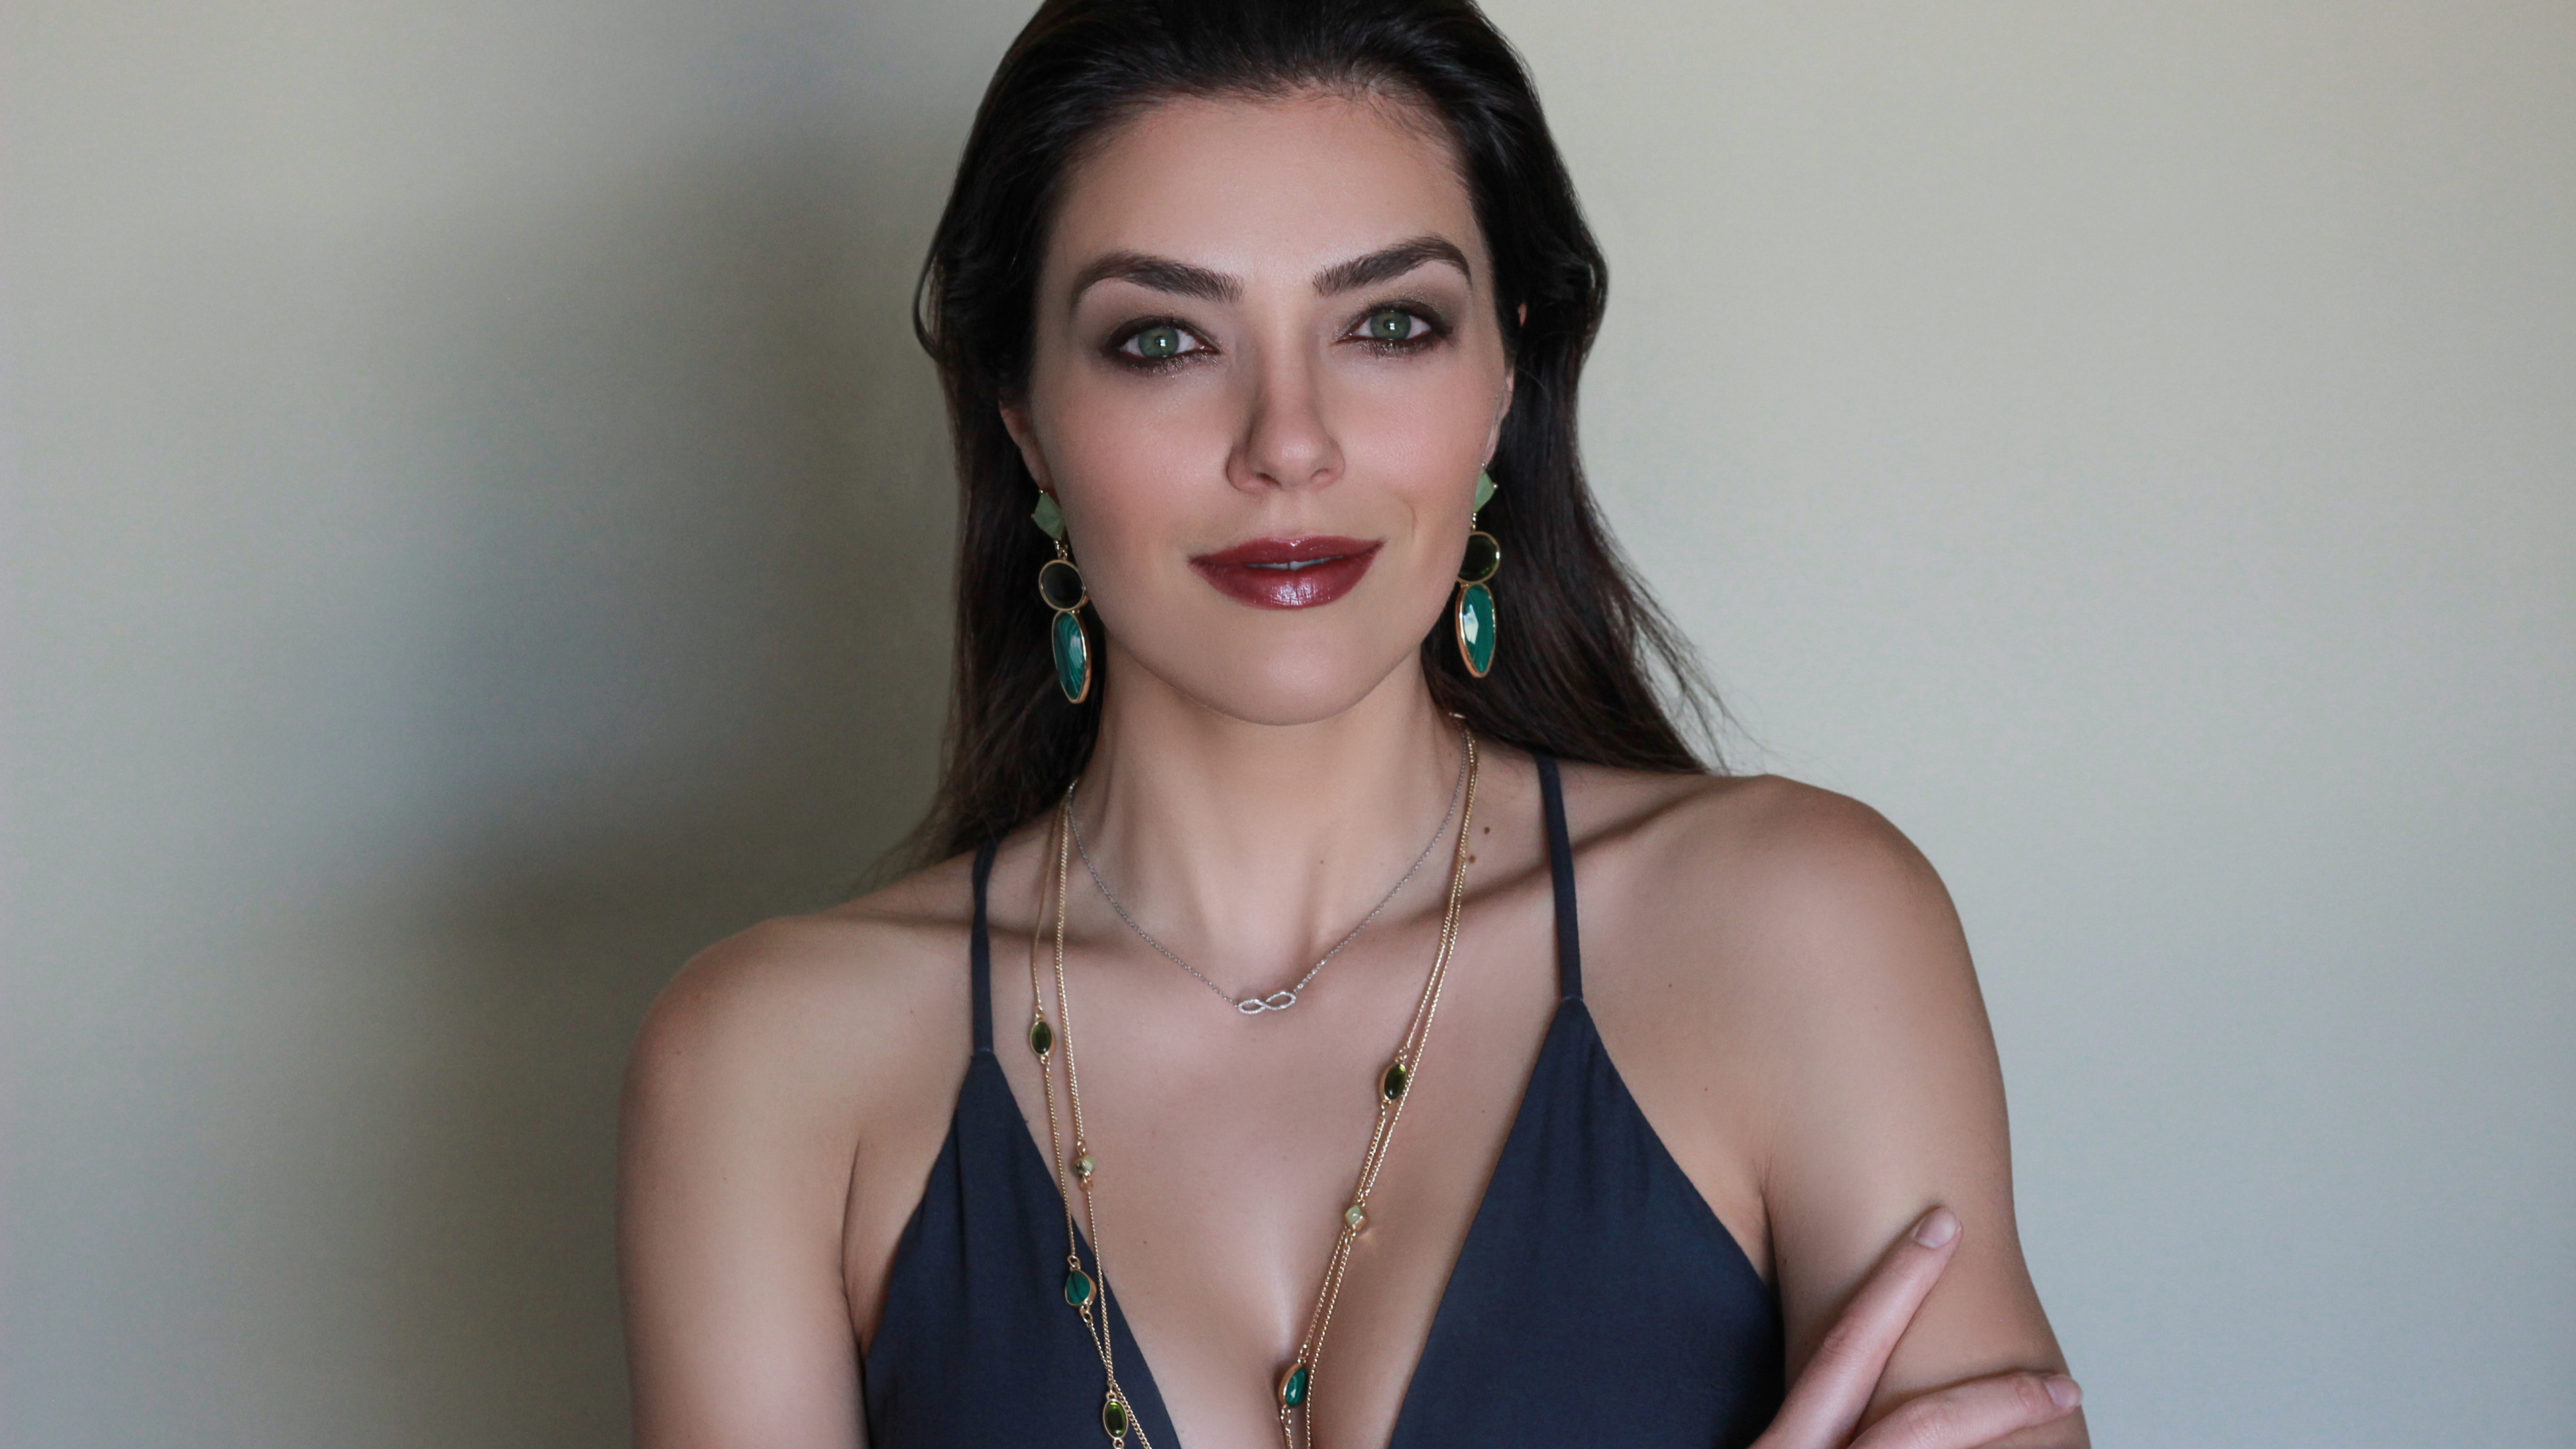 adrianne curry 1539535540 - Adrianne Curry - hd-wallpapers, girls wallpapers, celebrities wallpapers, adrianne curry wallpapers, 5k wallpapers, 4k-wallpapers